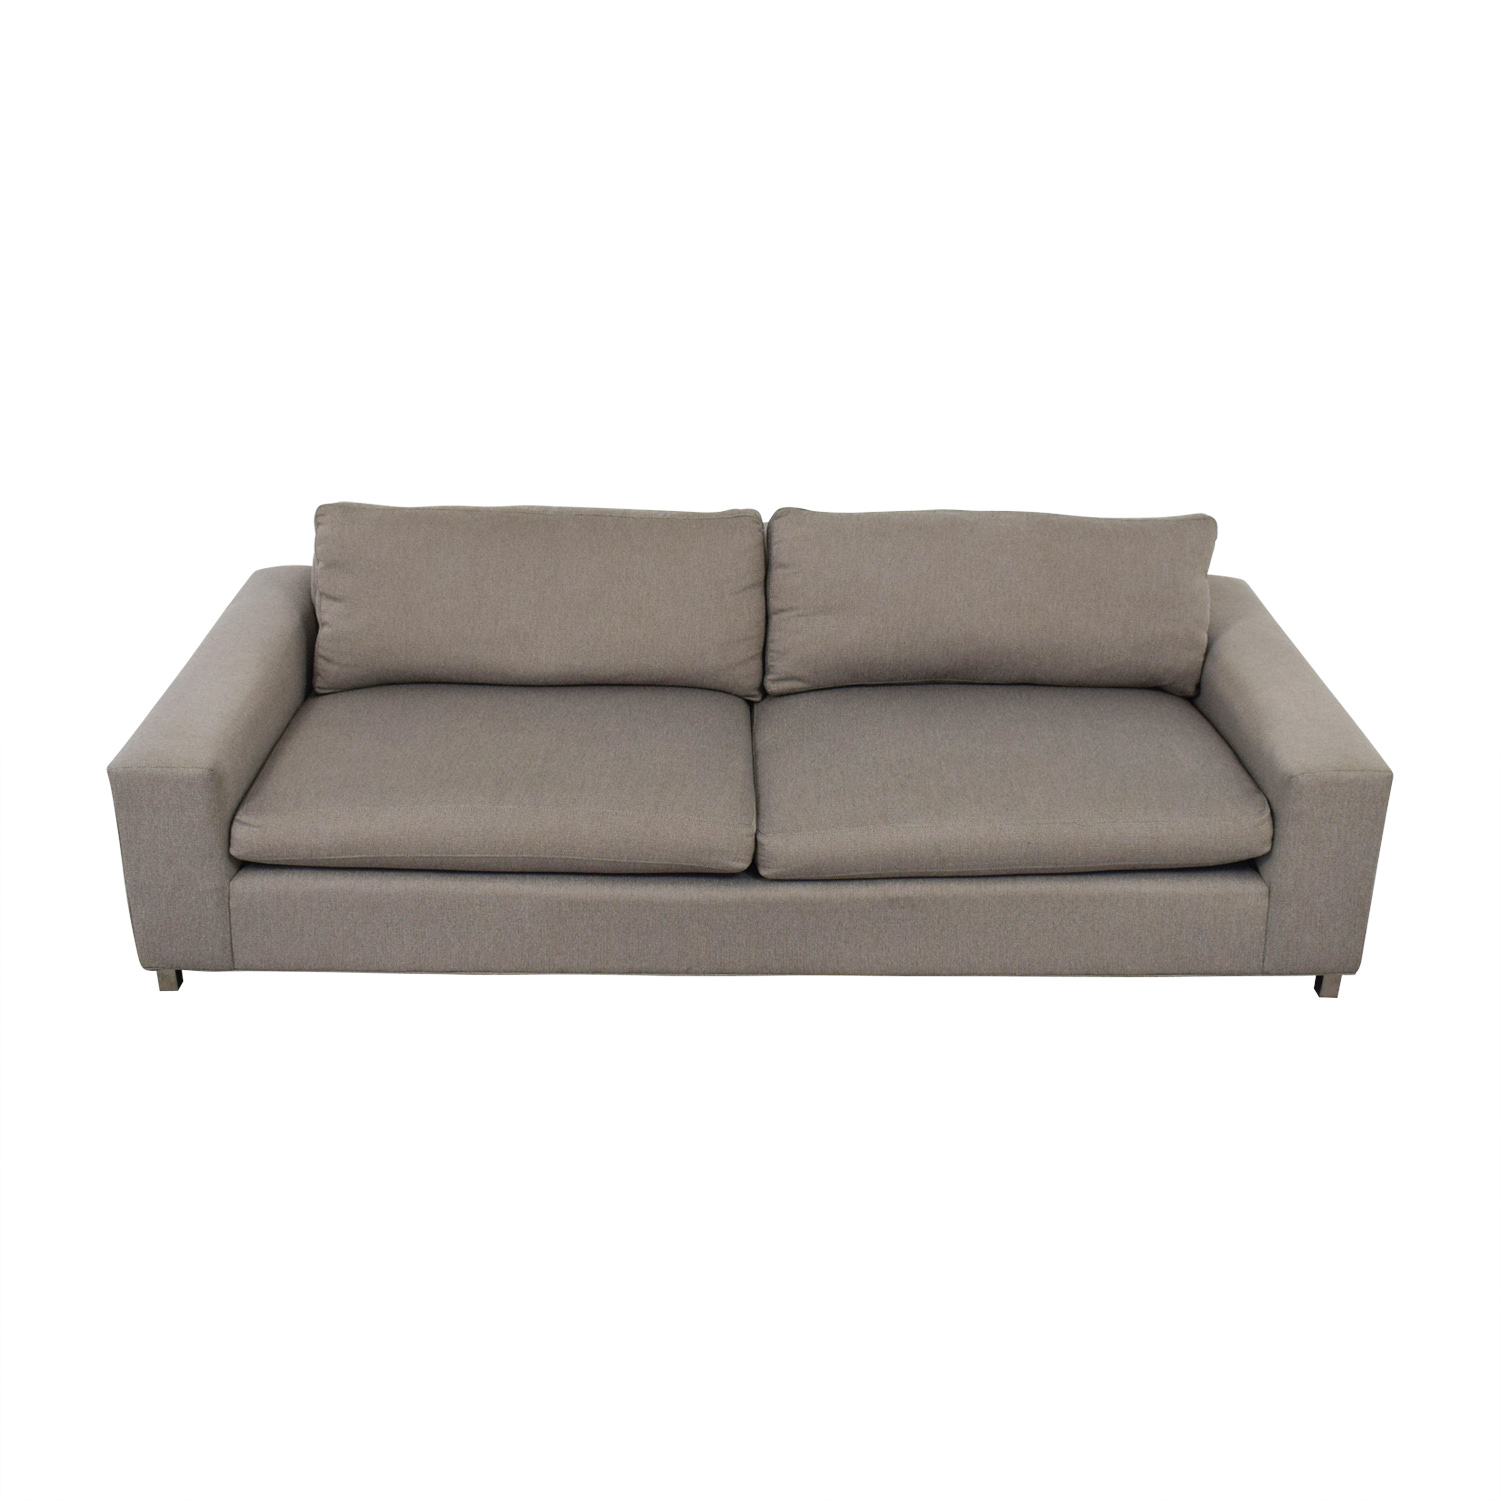 buy Room & Board Room & Board Klein Tula Putty Two-Cushion Sofa online